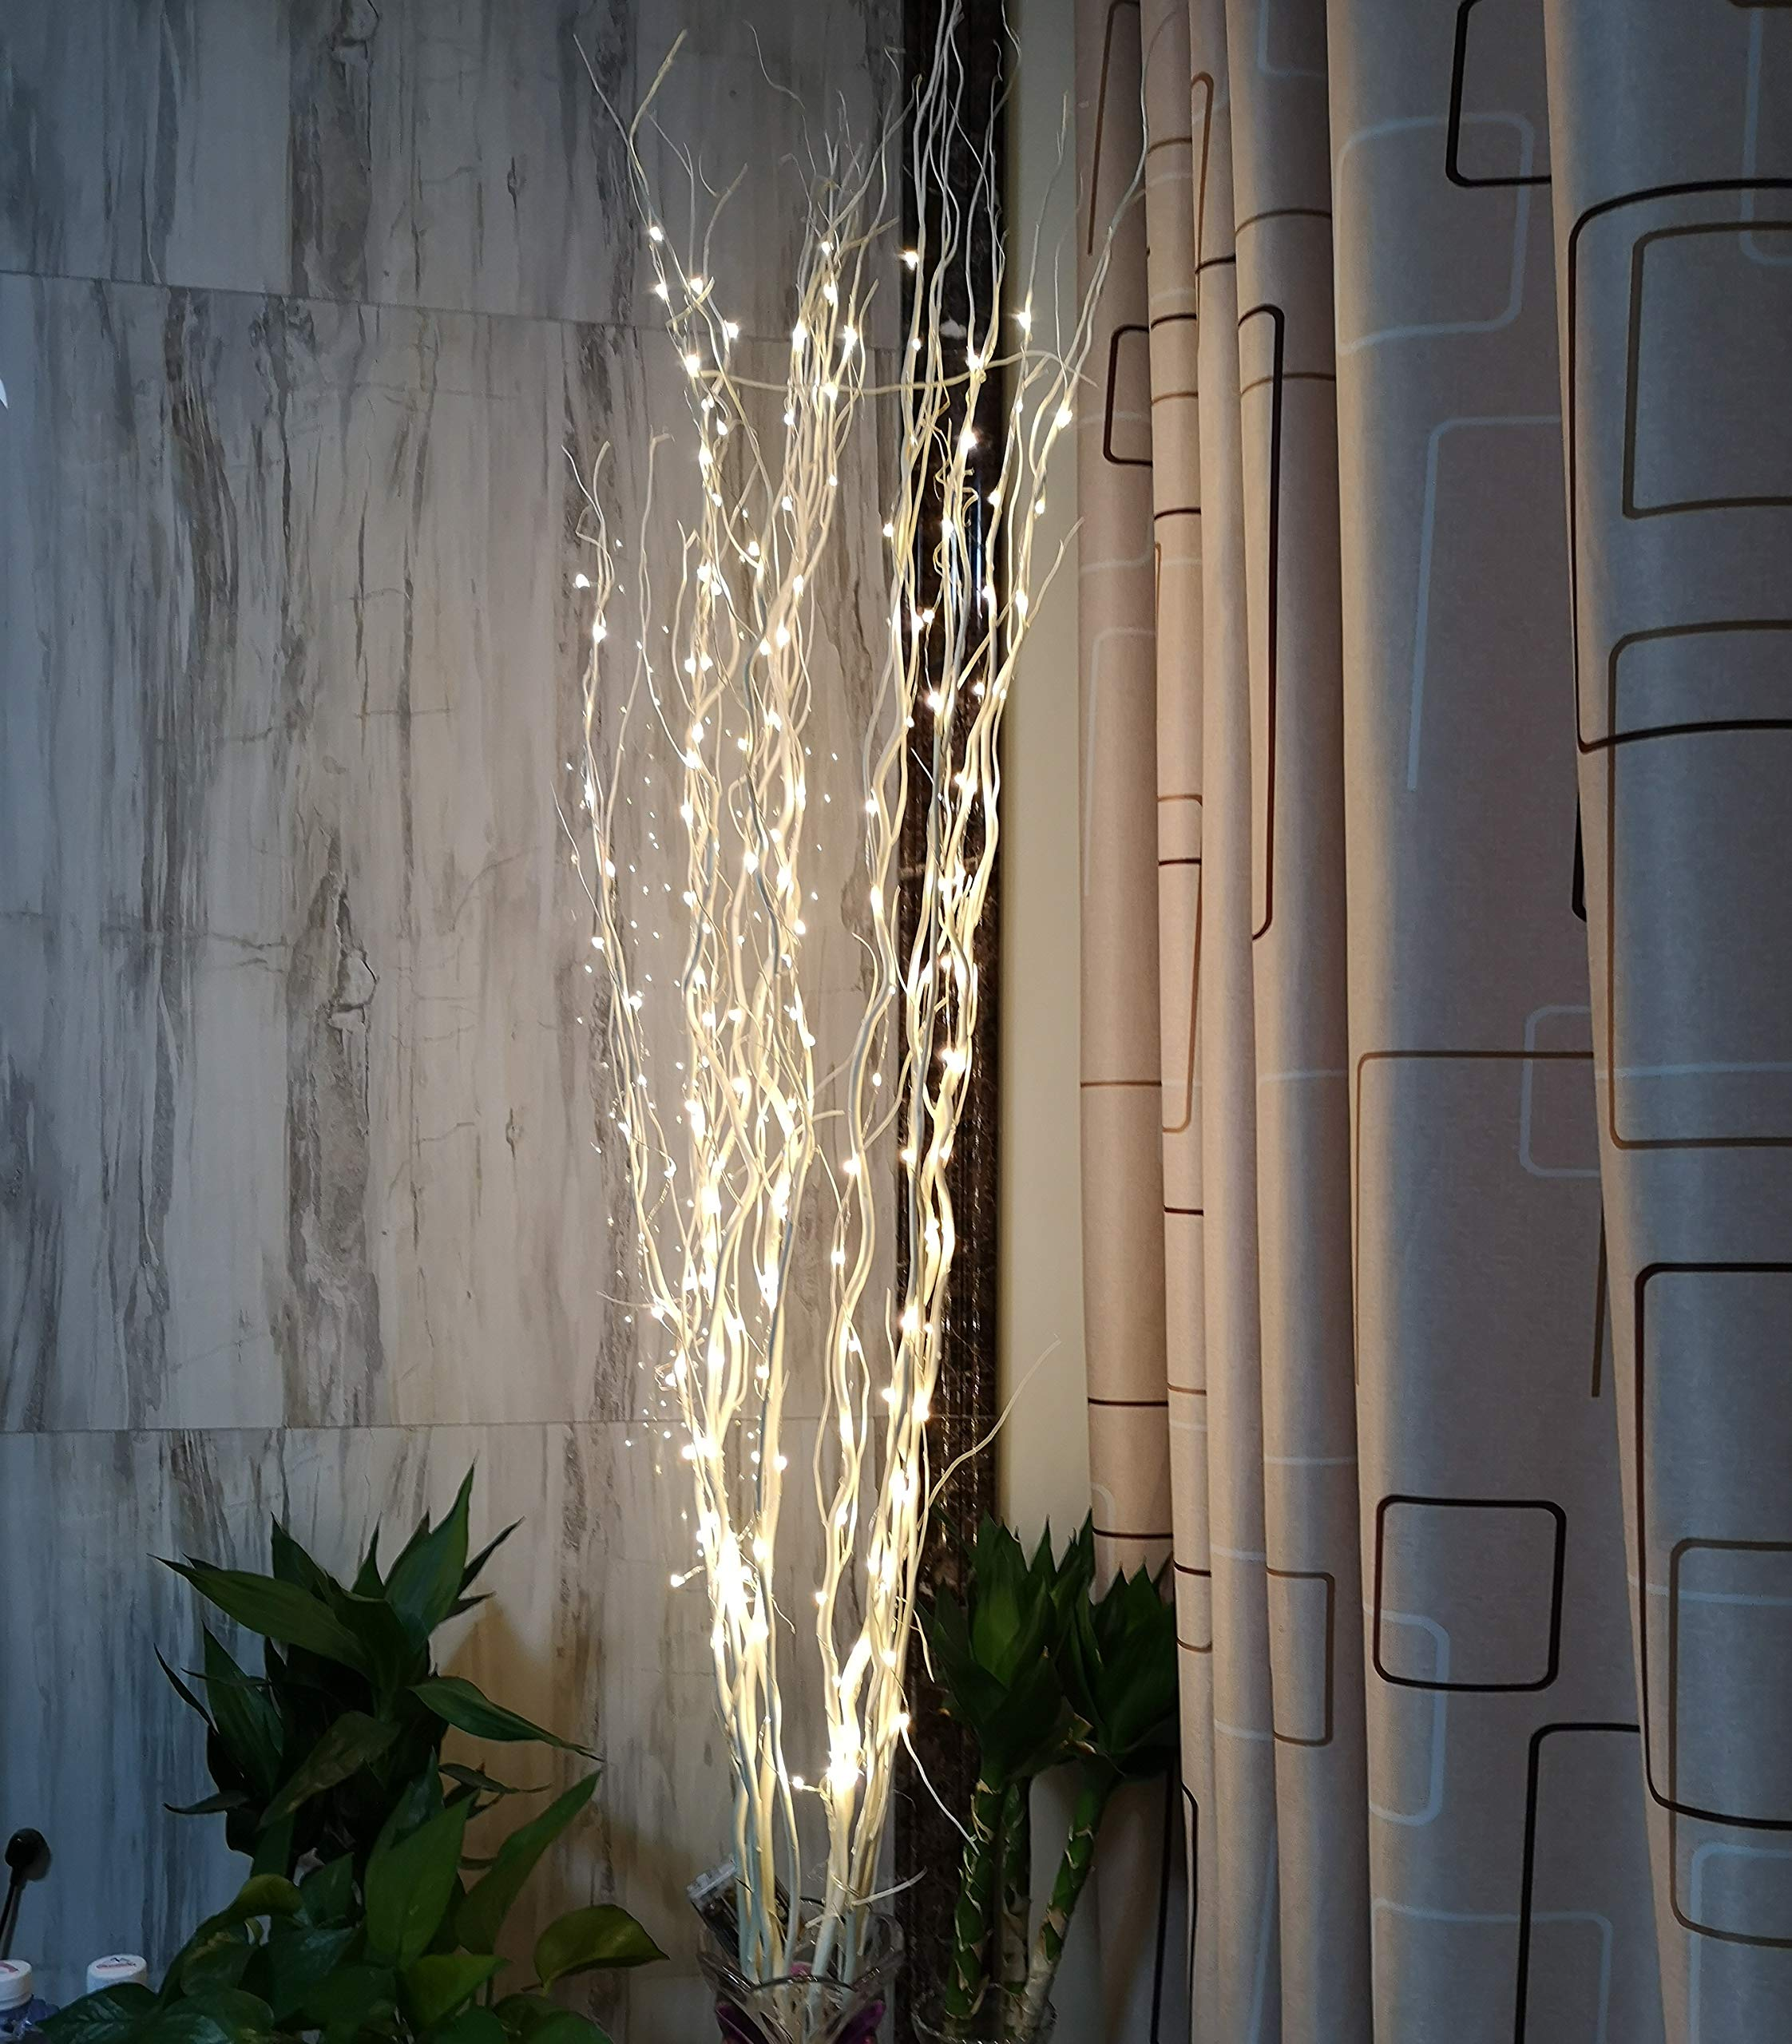 ZjRight 51Inch LED Natural Willow Twig Lighted Branch for Christmas Wedding Party Home Decoration Battery Powered DIY (Warm White)